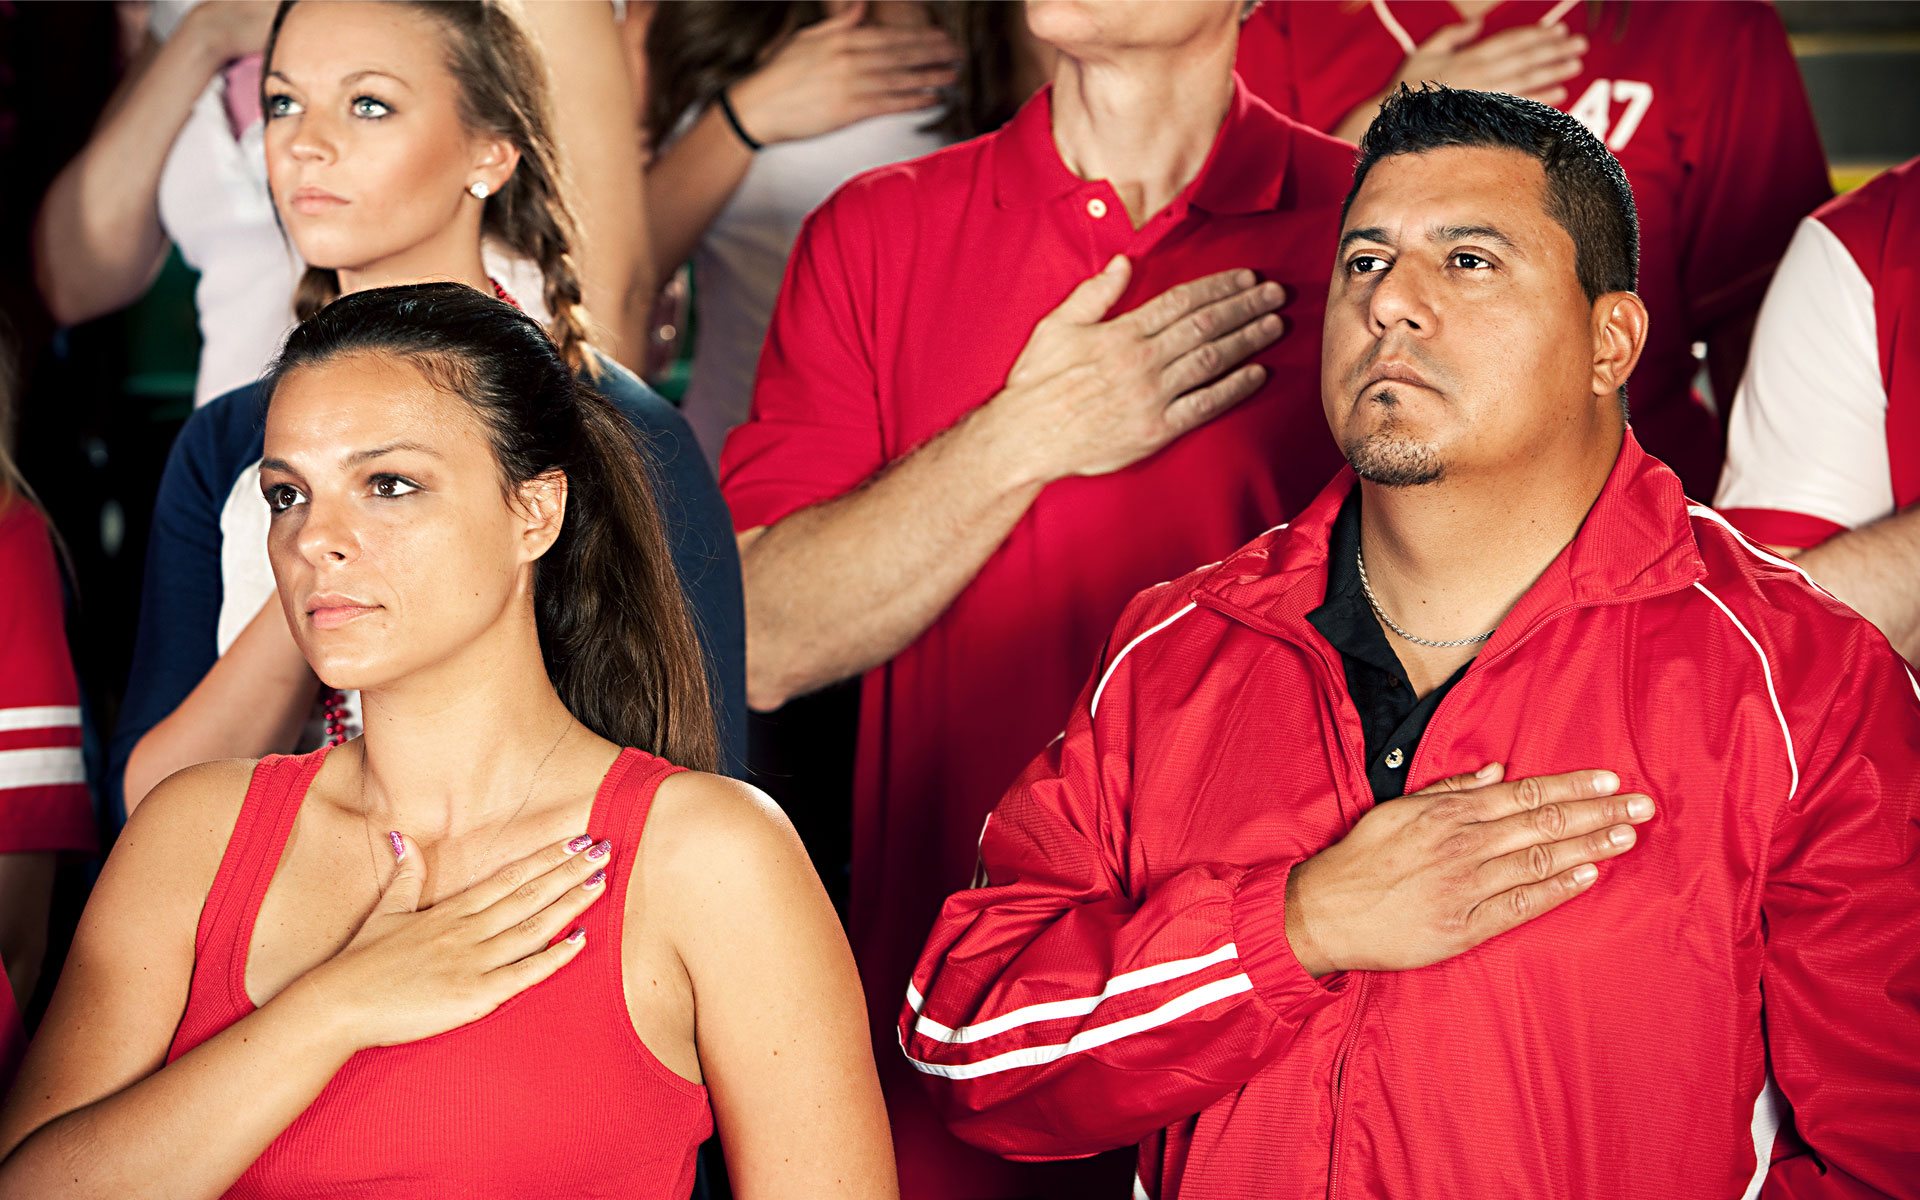 Attendees of a nondescript sporting event sing a nondescript national anthem for a nondescript country in this stock image.